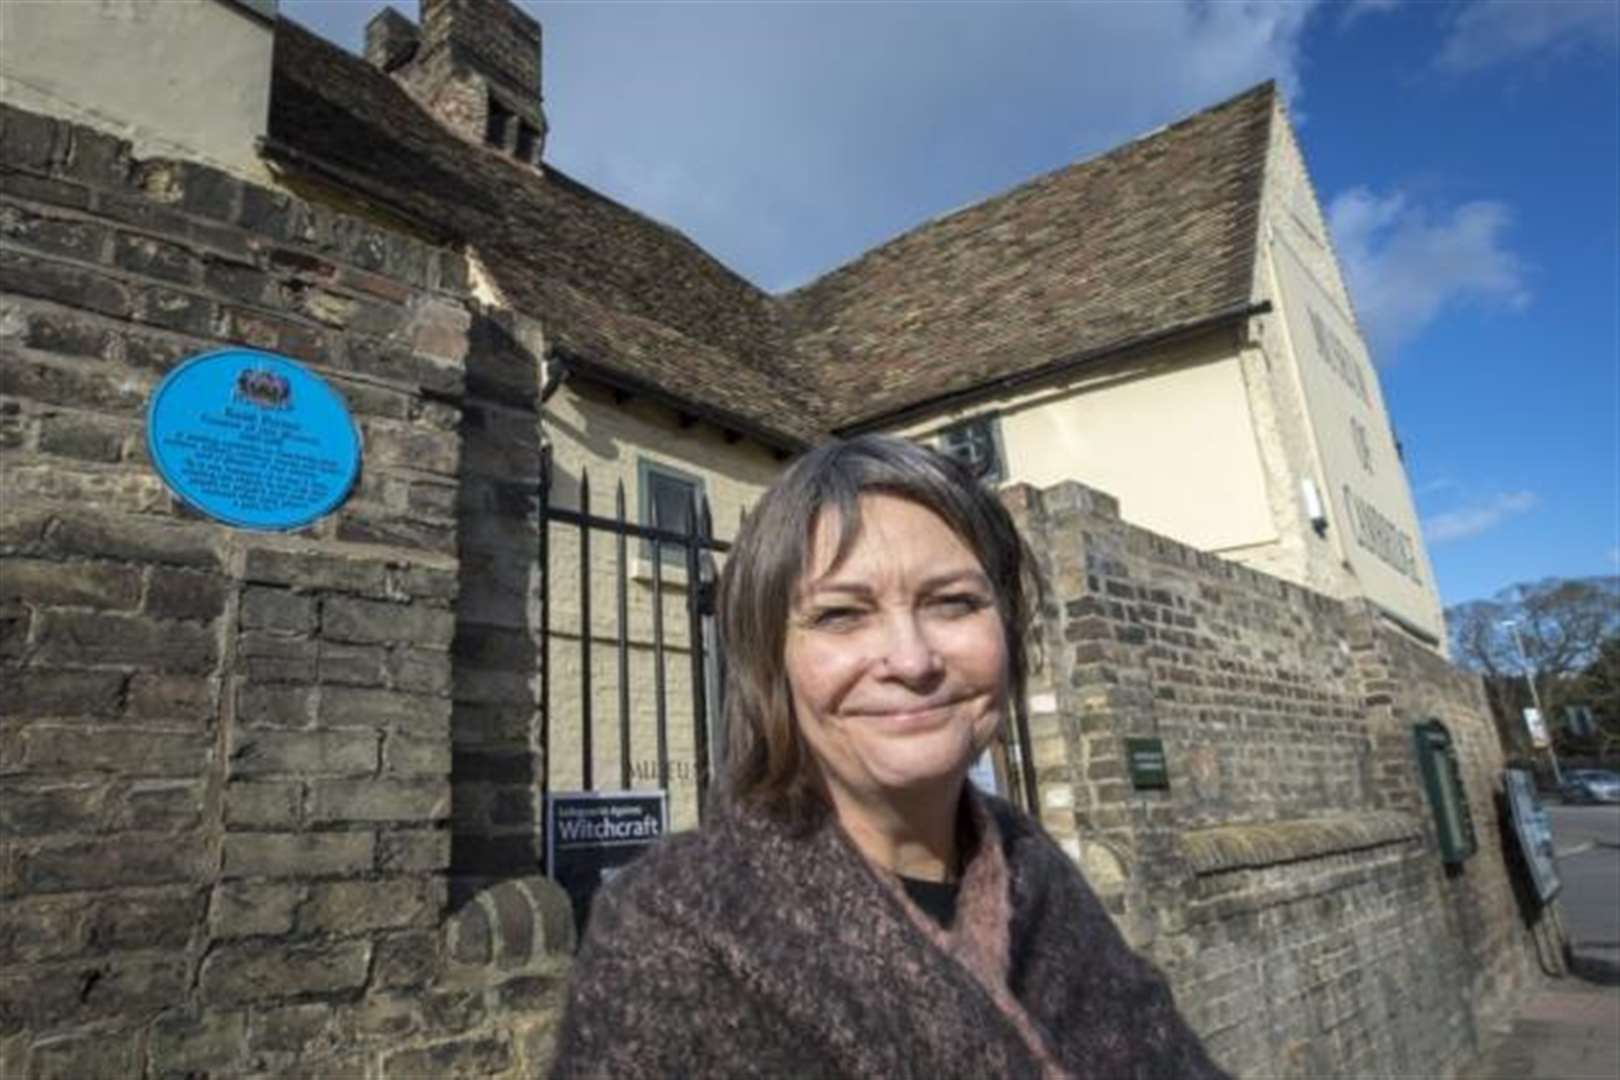 Museum of Cambridge handed a lifeline by Heritage Lottery Fund